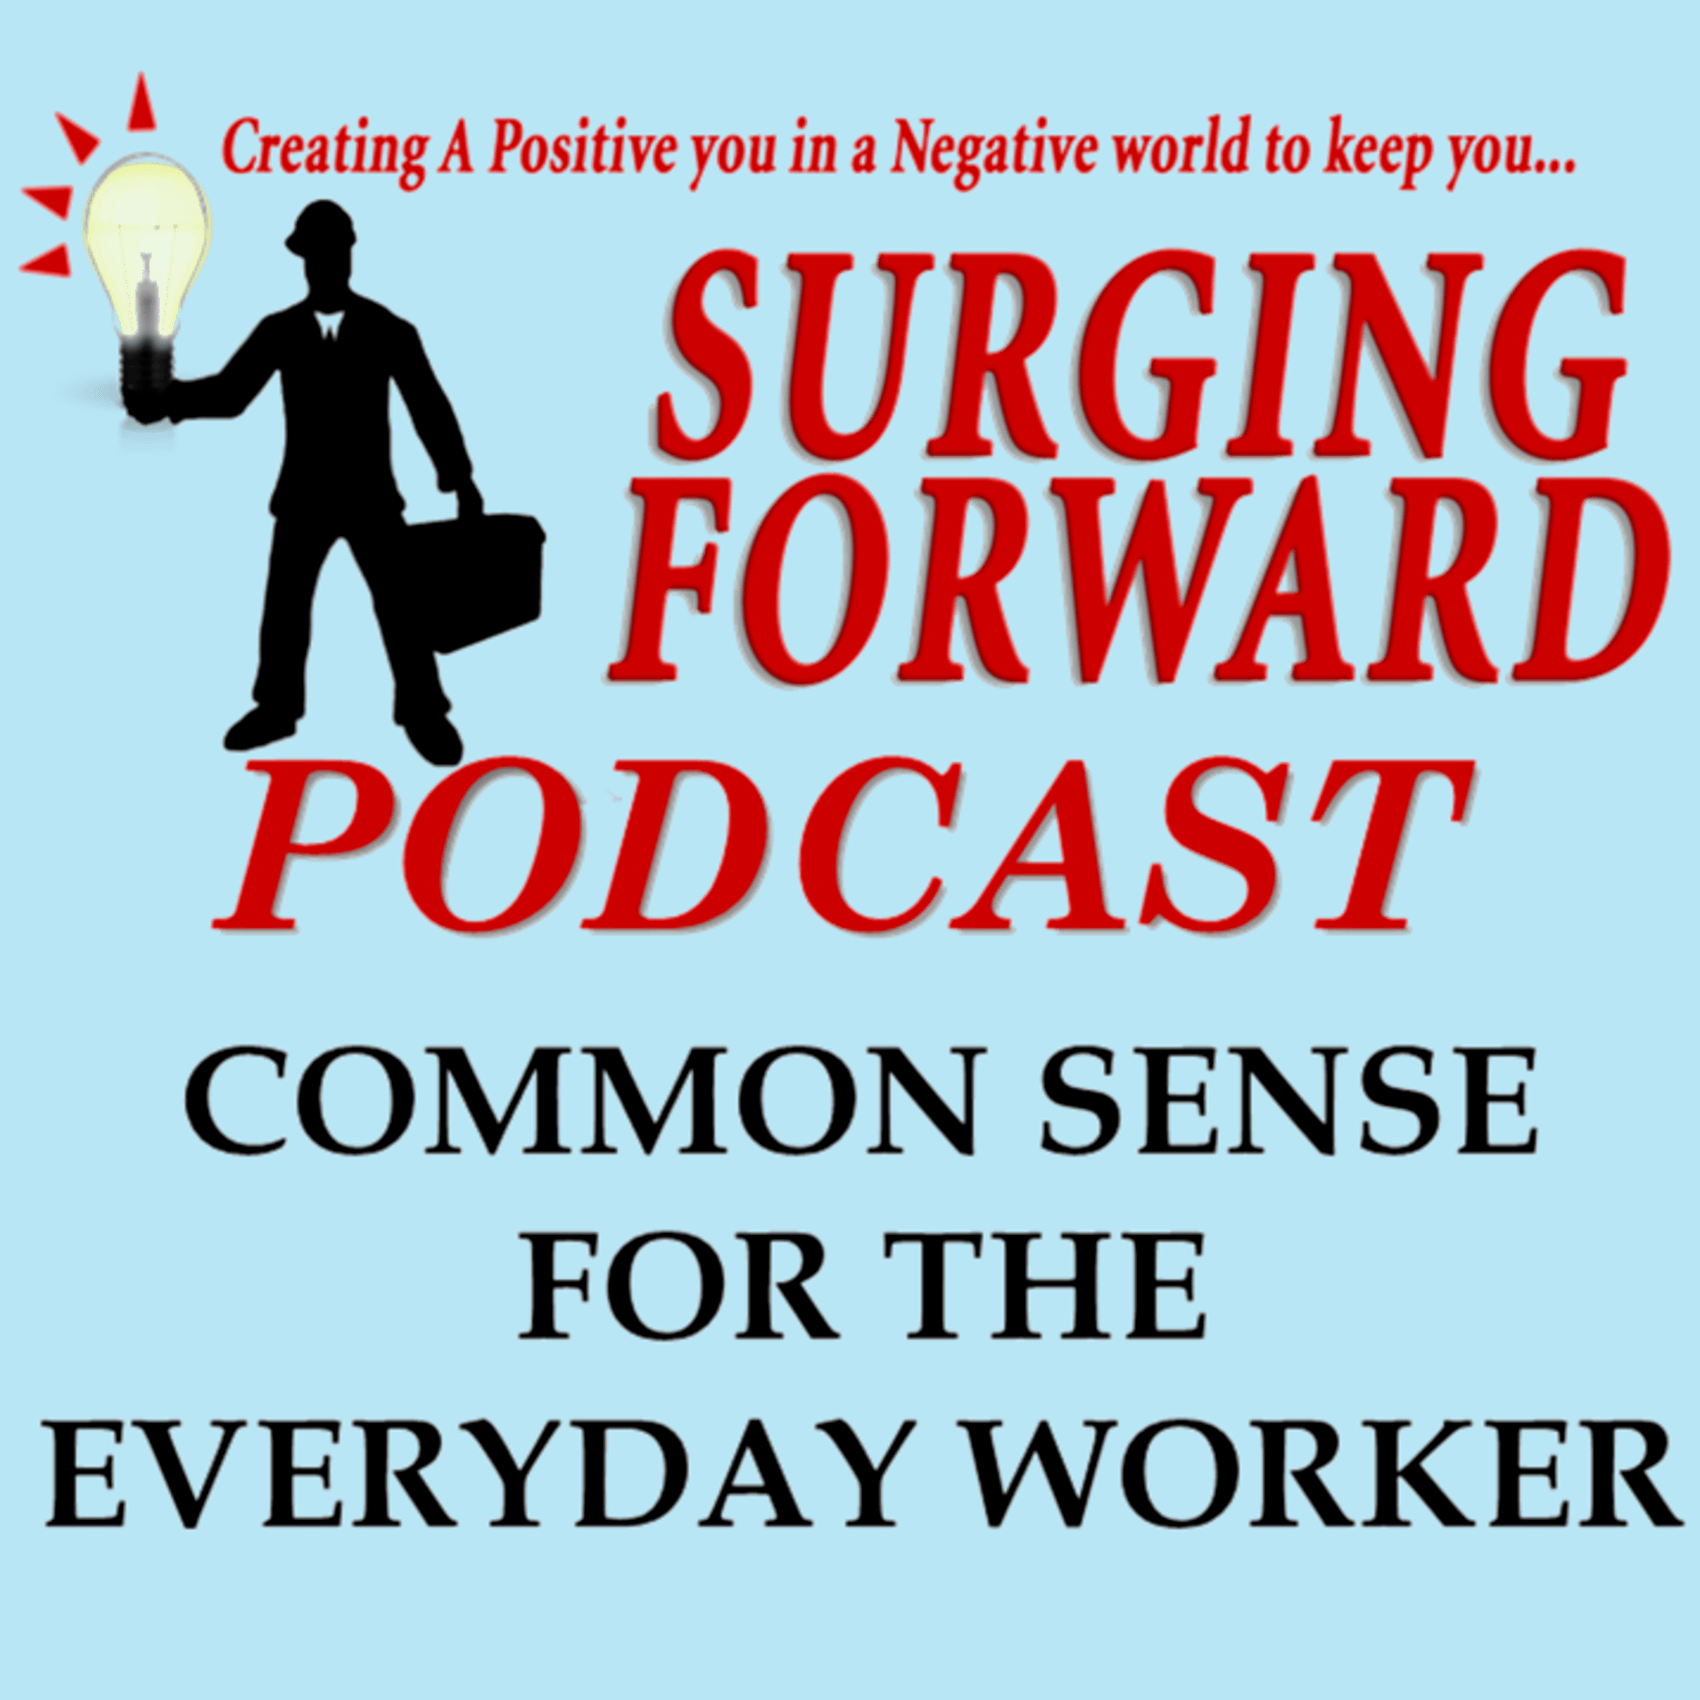 Surging Forward Podcast - A Podcast Devoted to the Working Class